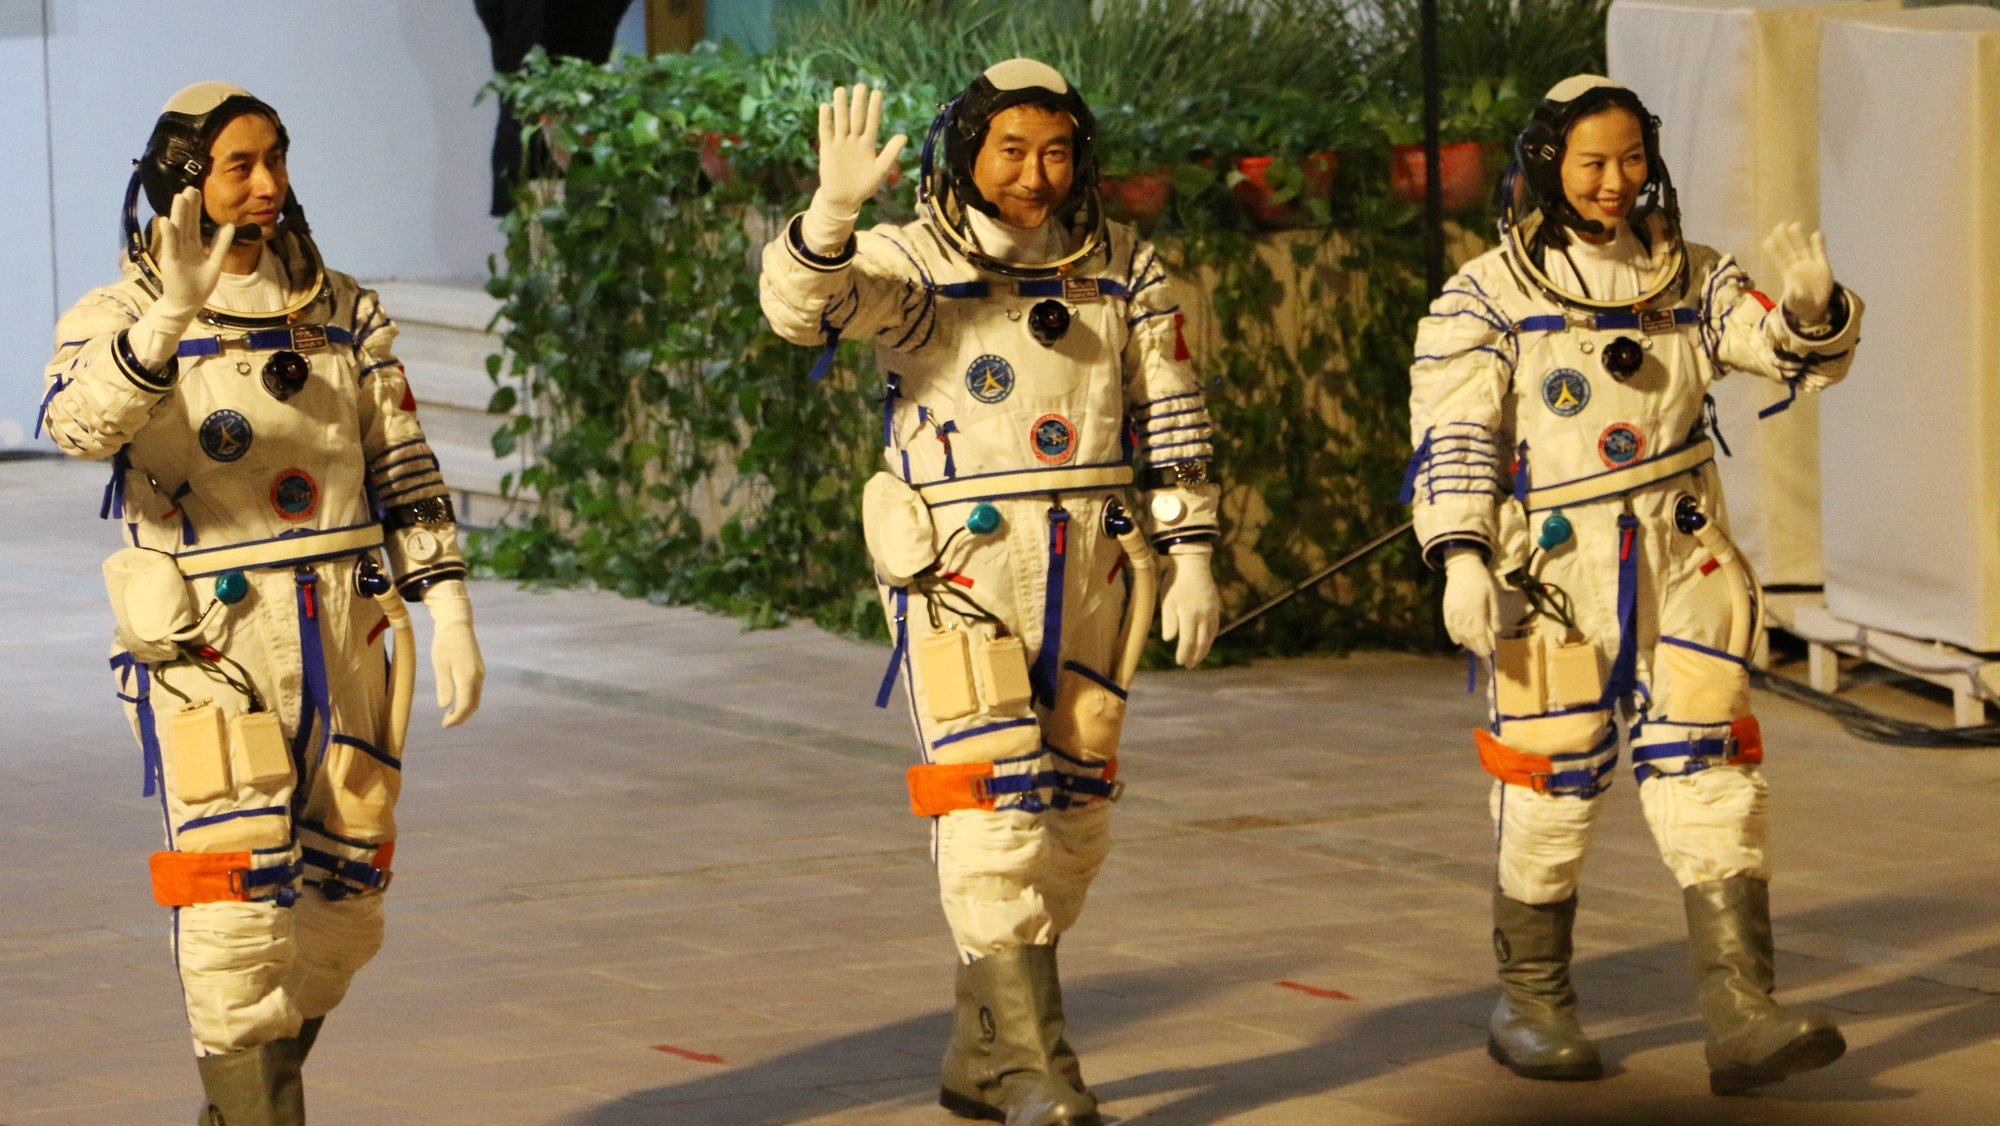 epa09525897 (L-R) Astronauts Ye Guangfu, Zhai Zhigang, and Wang Yaping, greet the crowd before their departure to Tiangong space station at the Jiuquan Satellite Launch Center in northwest China, 15 October 2021. The trio will stay in orbit for six months, a regular duration for future Tianhe space station visitors.  EPA/LIU HUAIYU CHINA OUT